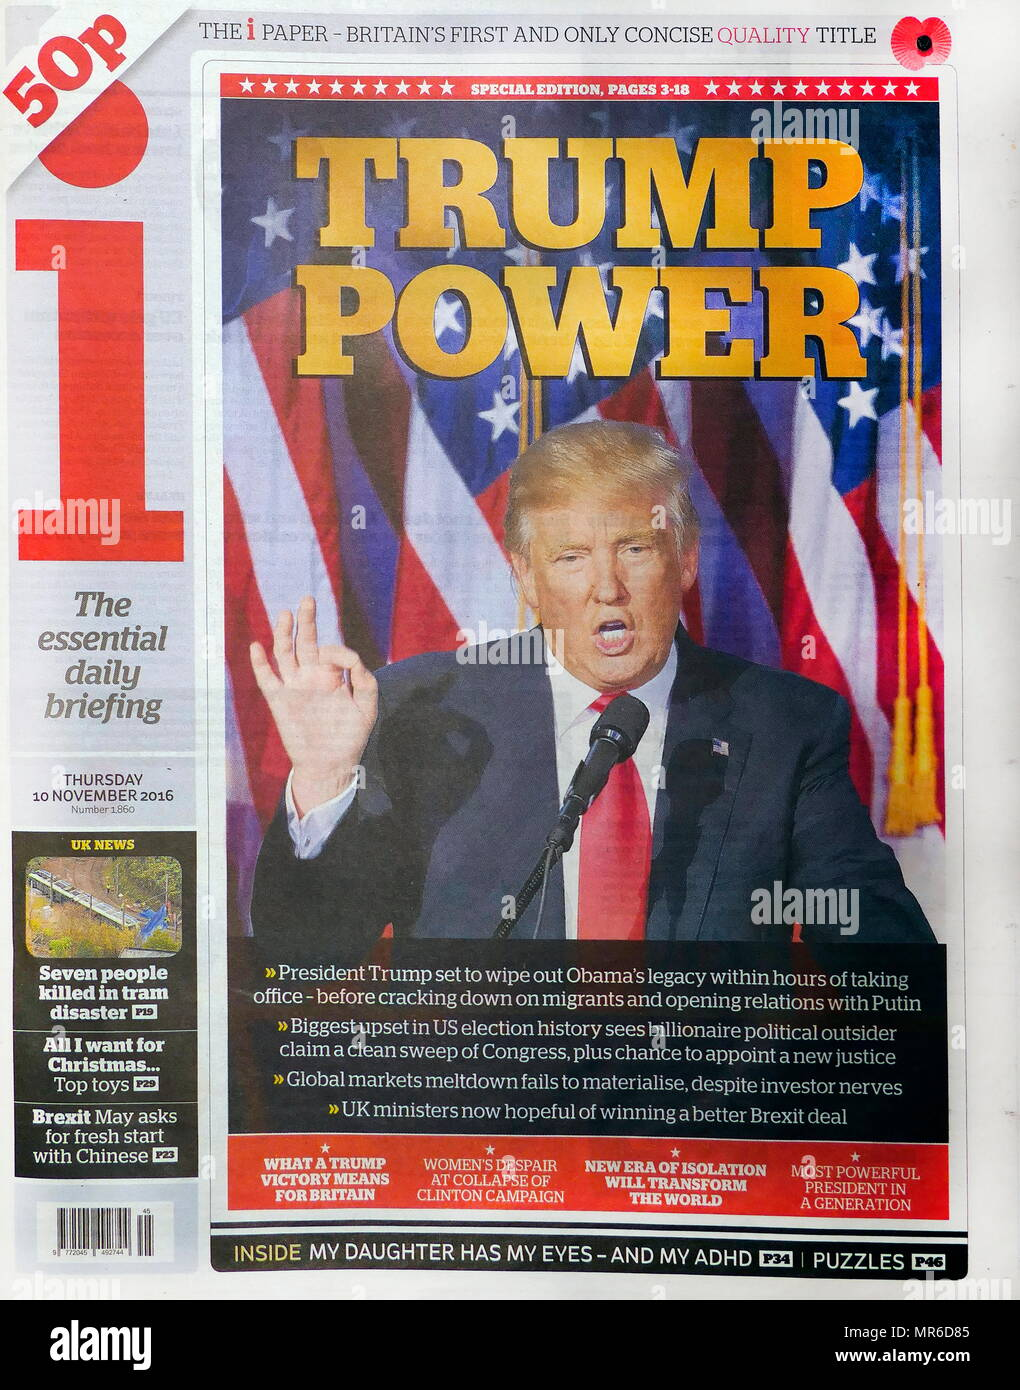 Front page headline of the British newspaper 'The I' 10th November 2016. Trump Power. - Stock Image